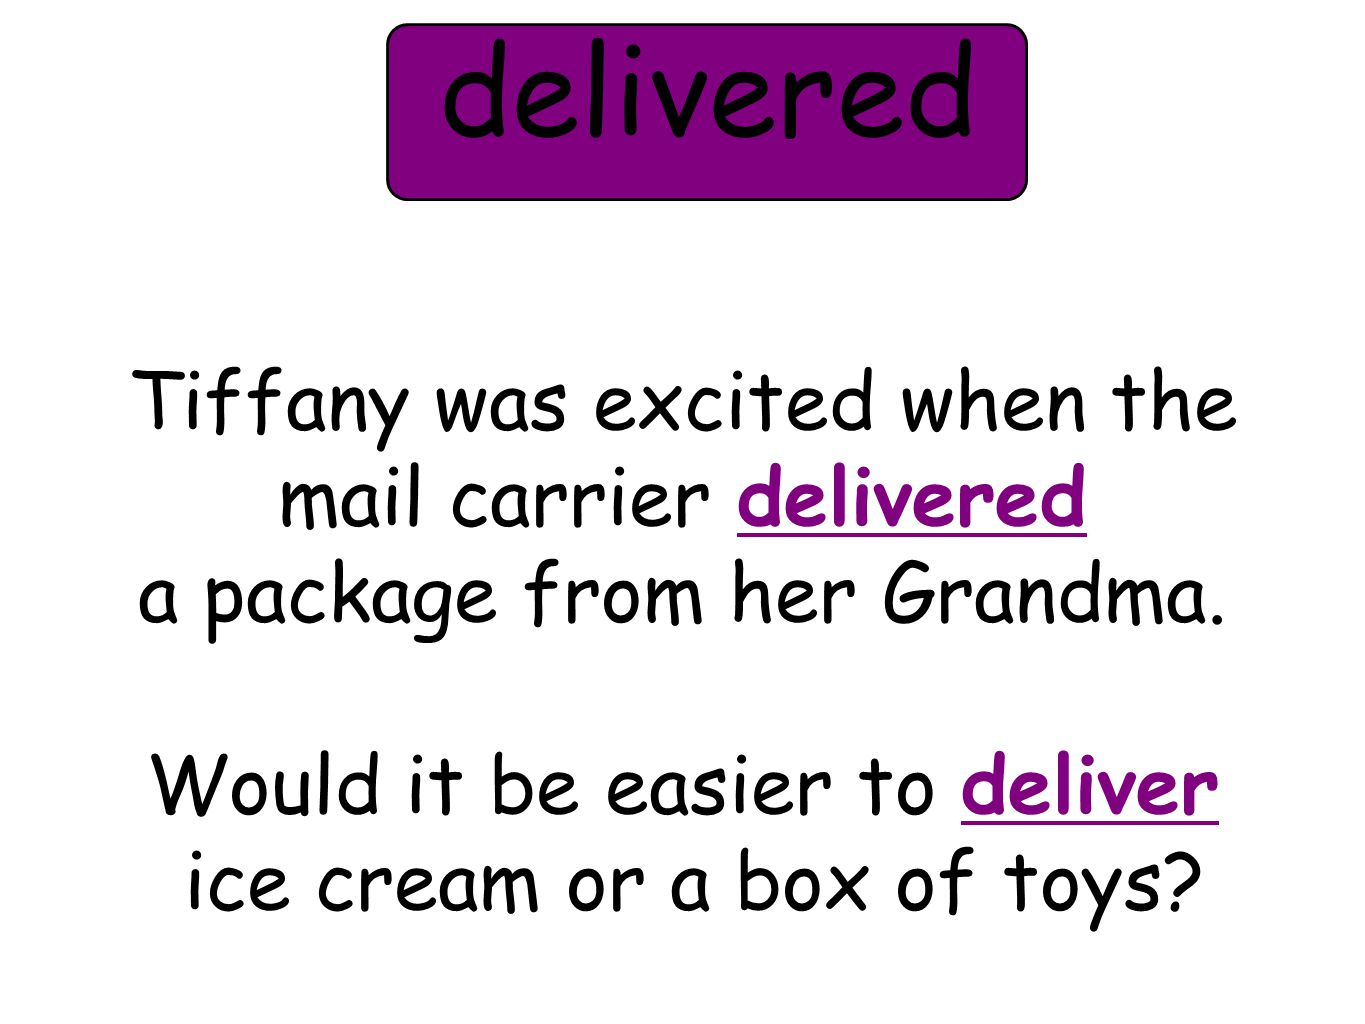 Tiffany was excited when the mail carrier delivered a package from her Grandma. Would it be easier to deliver ice cream or a box of toys? delivered